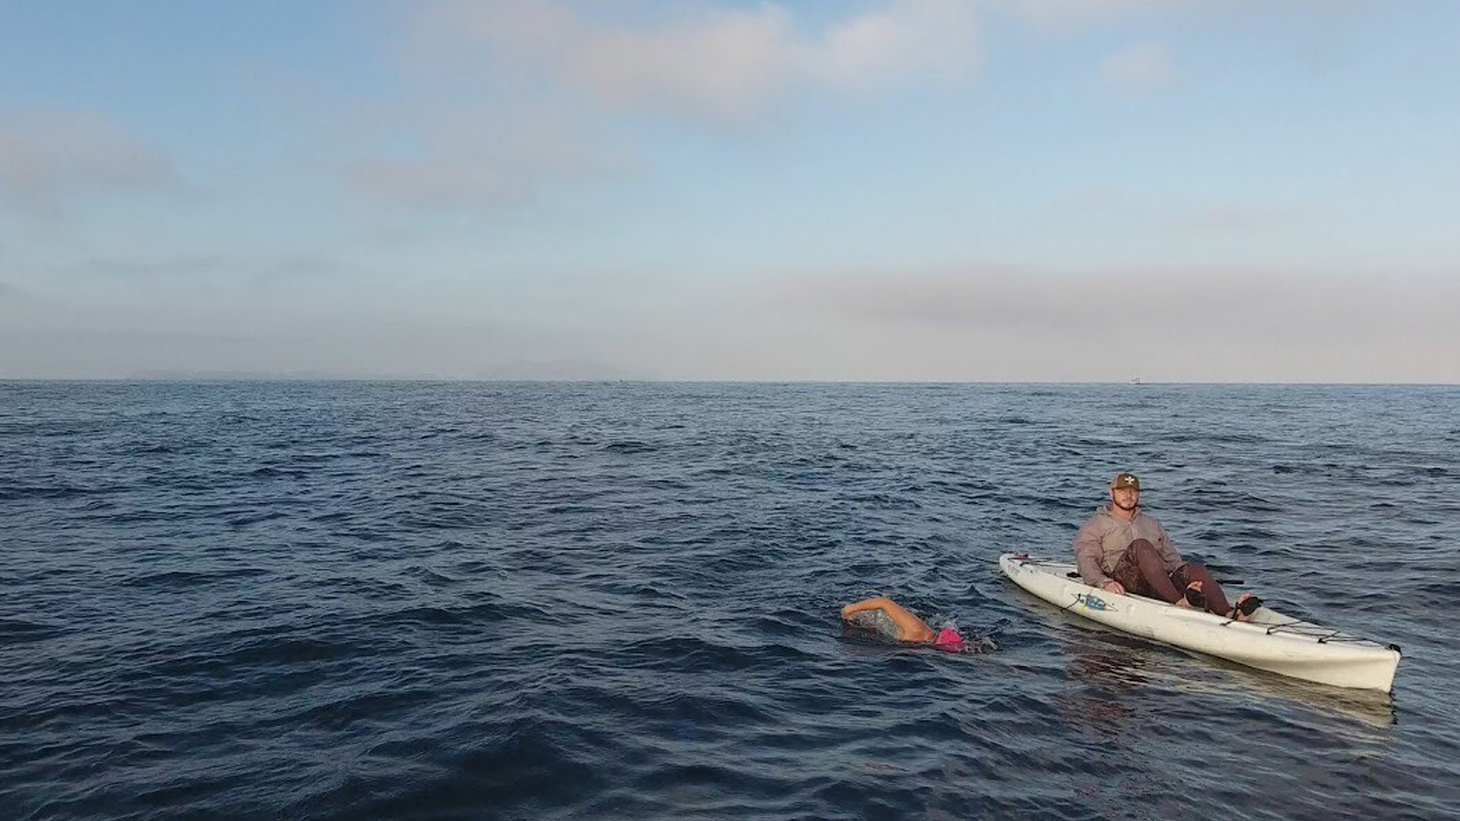 Next week, Santa Barbara open ocean swimmer Rachel Horn plans to swim across the Santa Barbara Channel from Santa Cruz Island to Oxnard - a total of 19 miles.